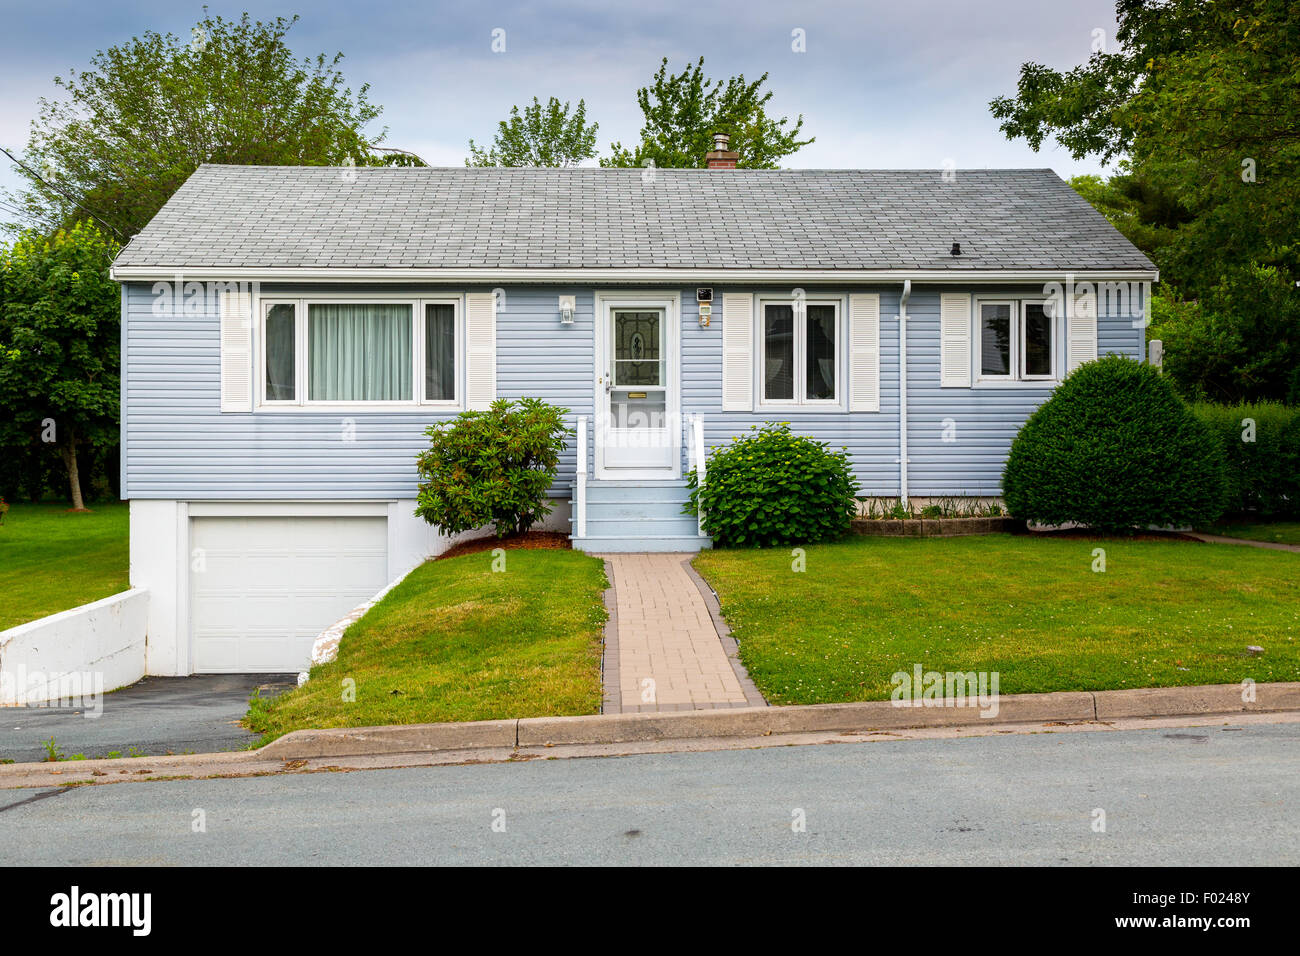 North American bungalow from the sixties or seventies. - Stock Image